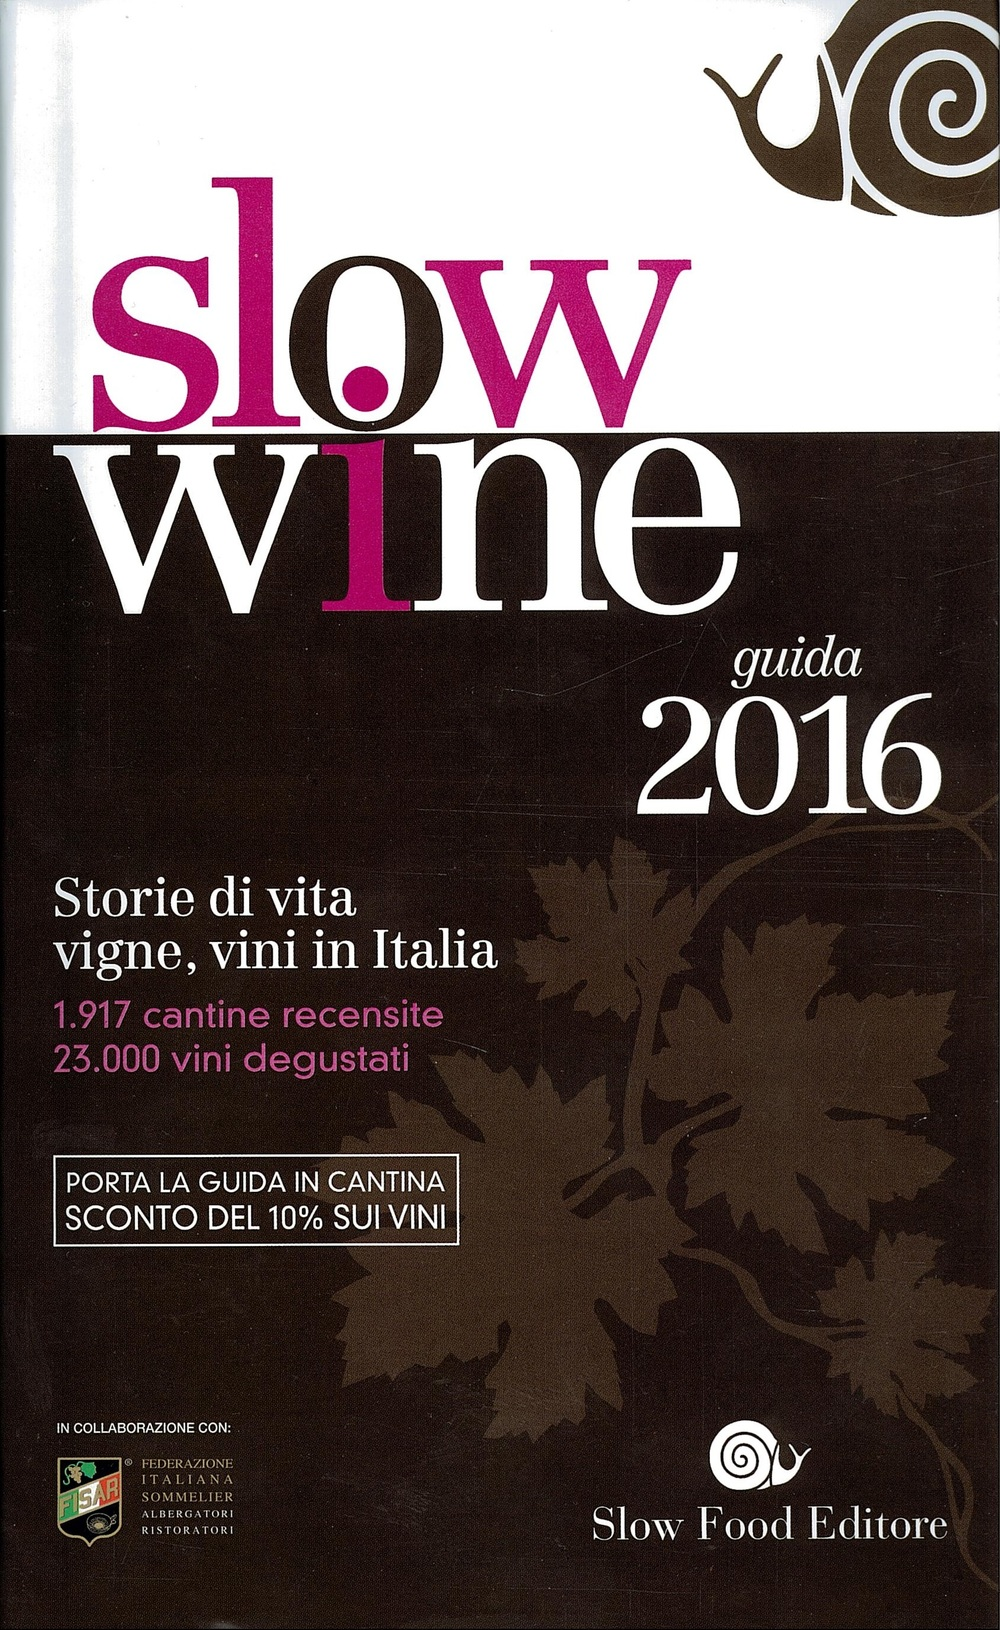 Slow Food Editore_Slow Wine_2016_Cover.jpg